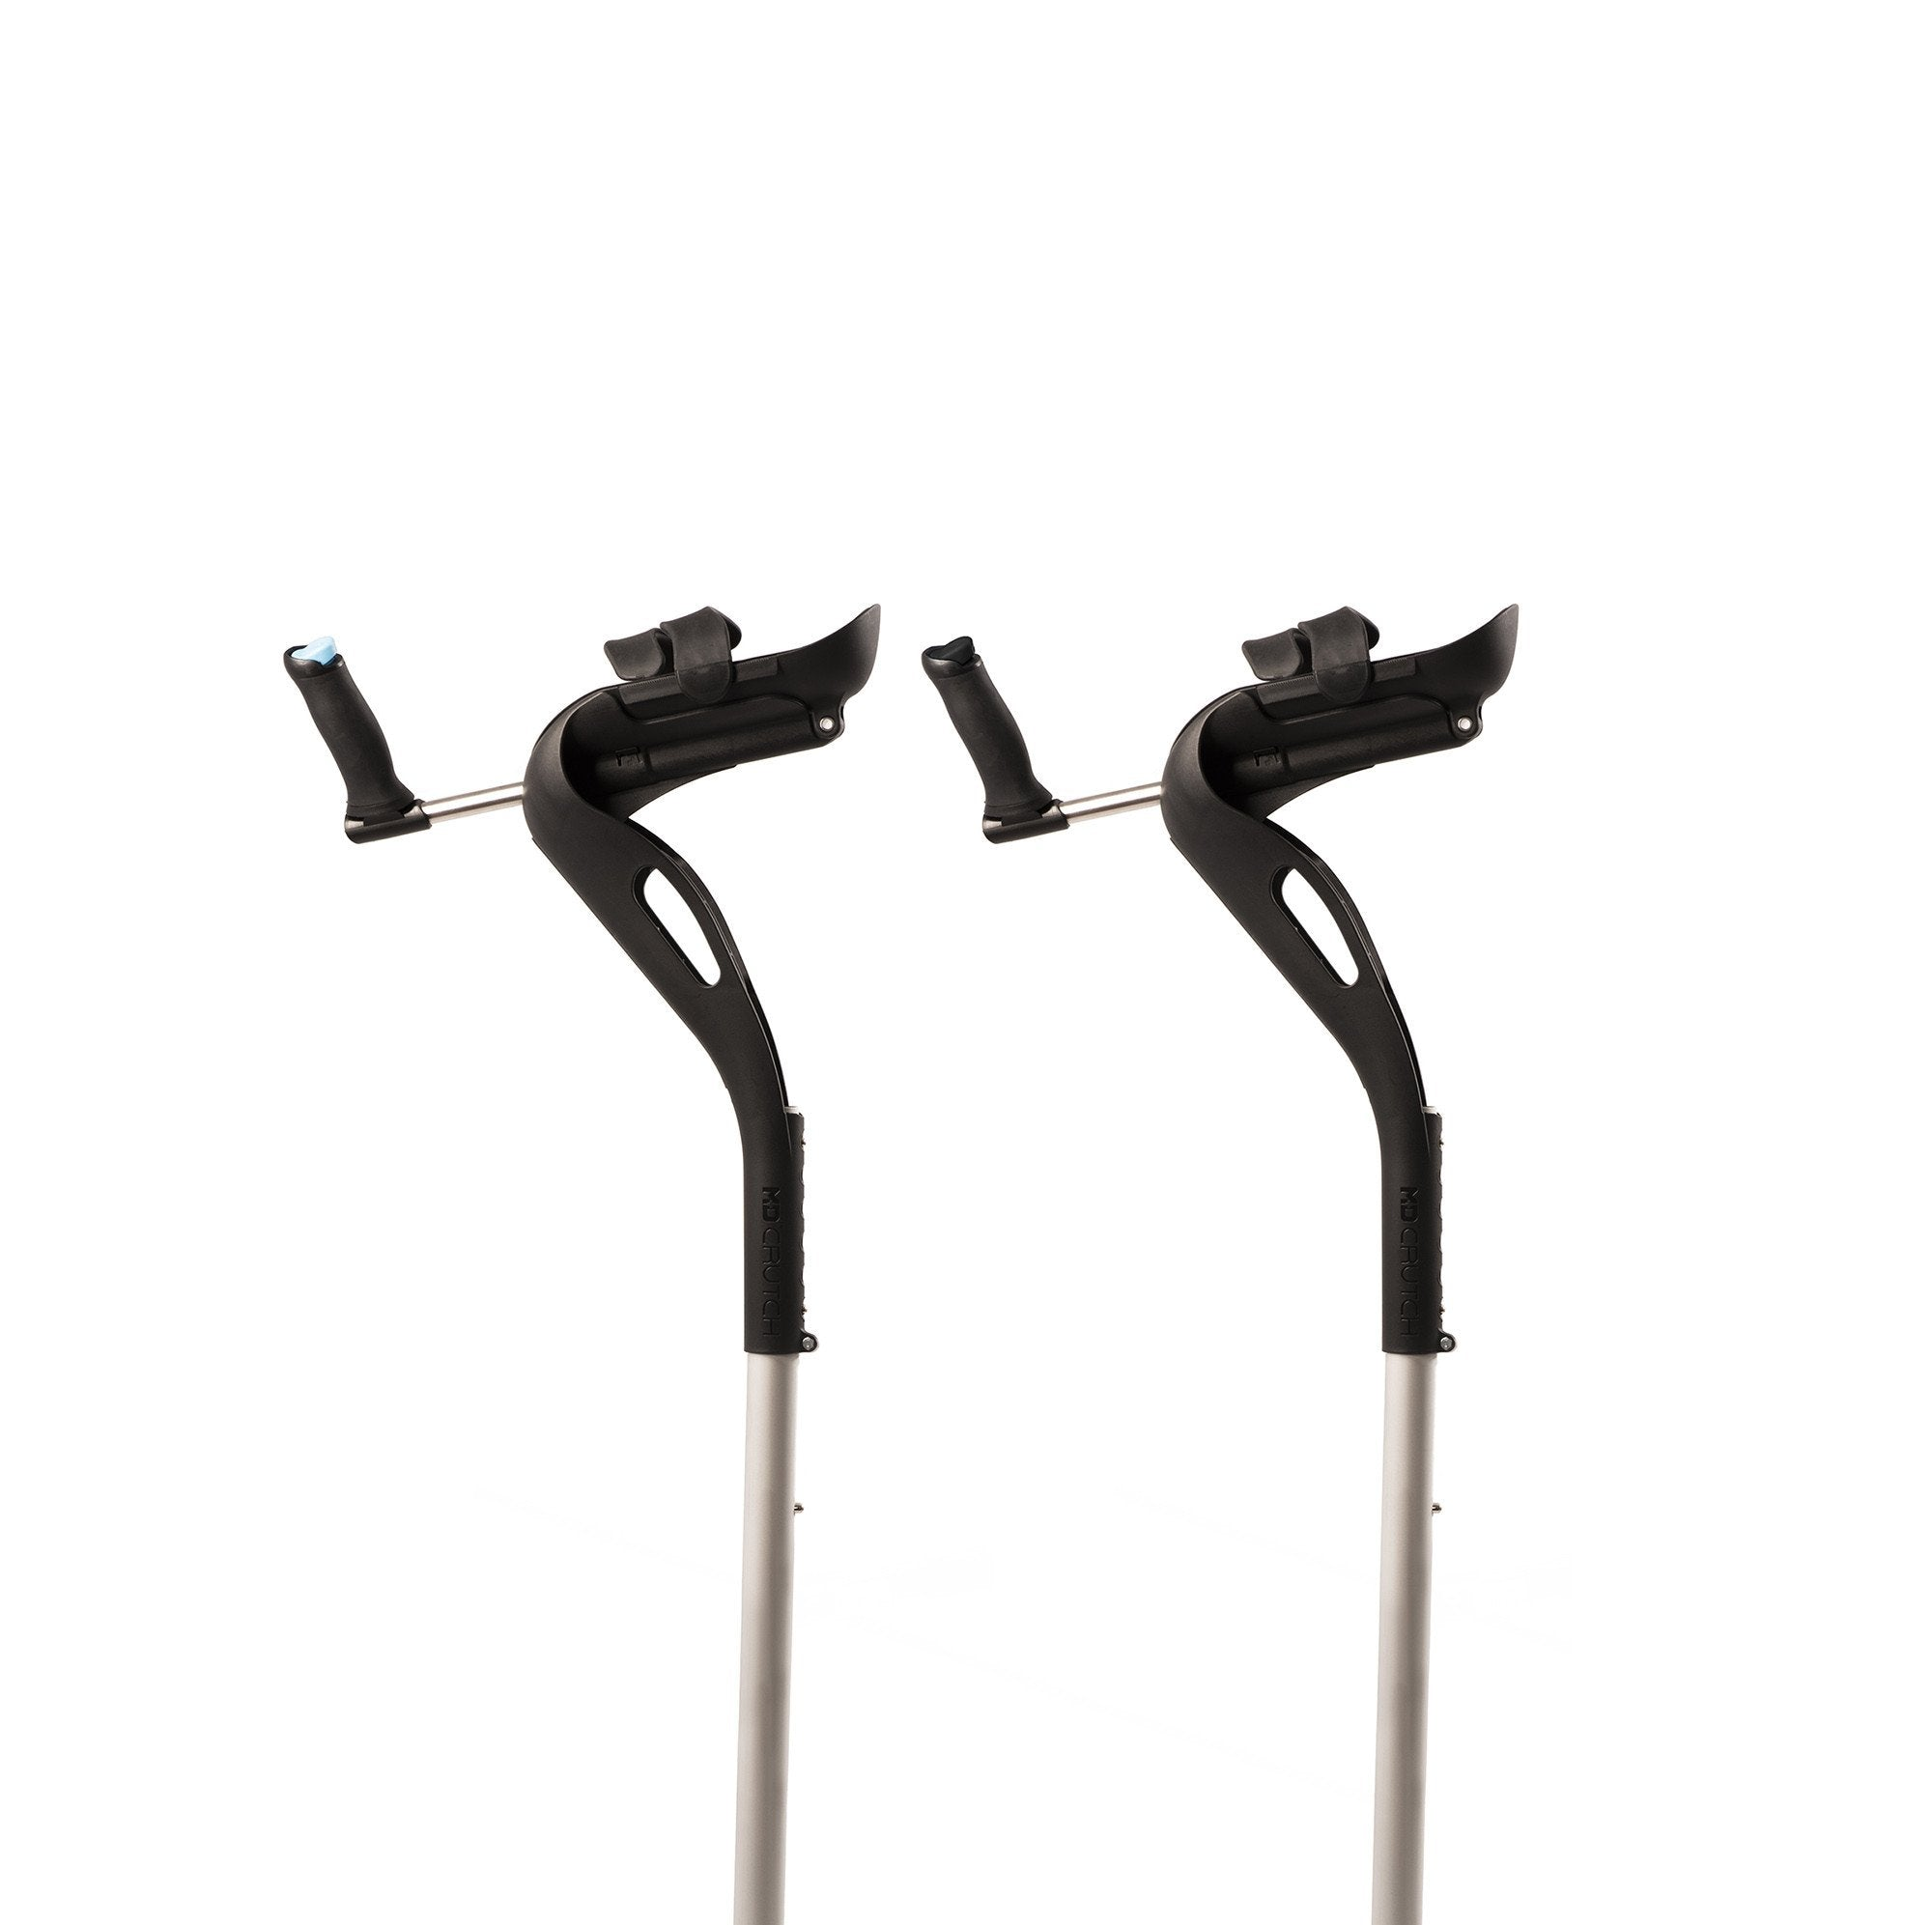 The M+D Crutches cradle the user's elbows, removing pressure that other crutches place on the armpits, wrists and hands.